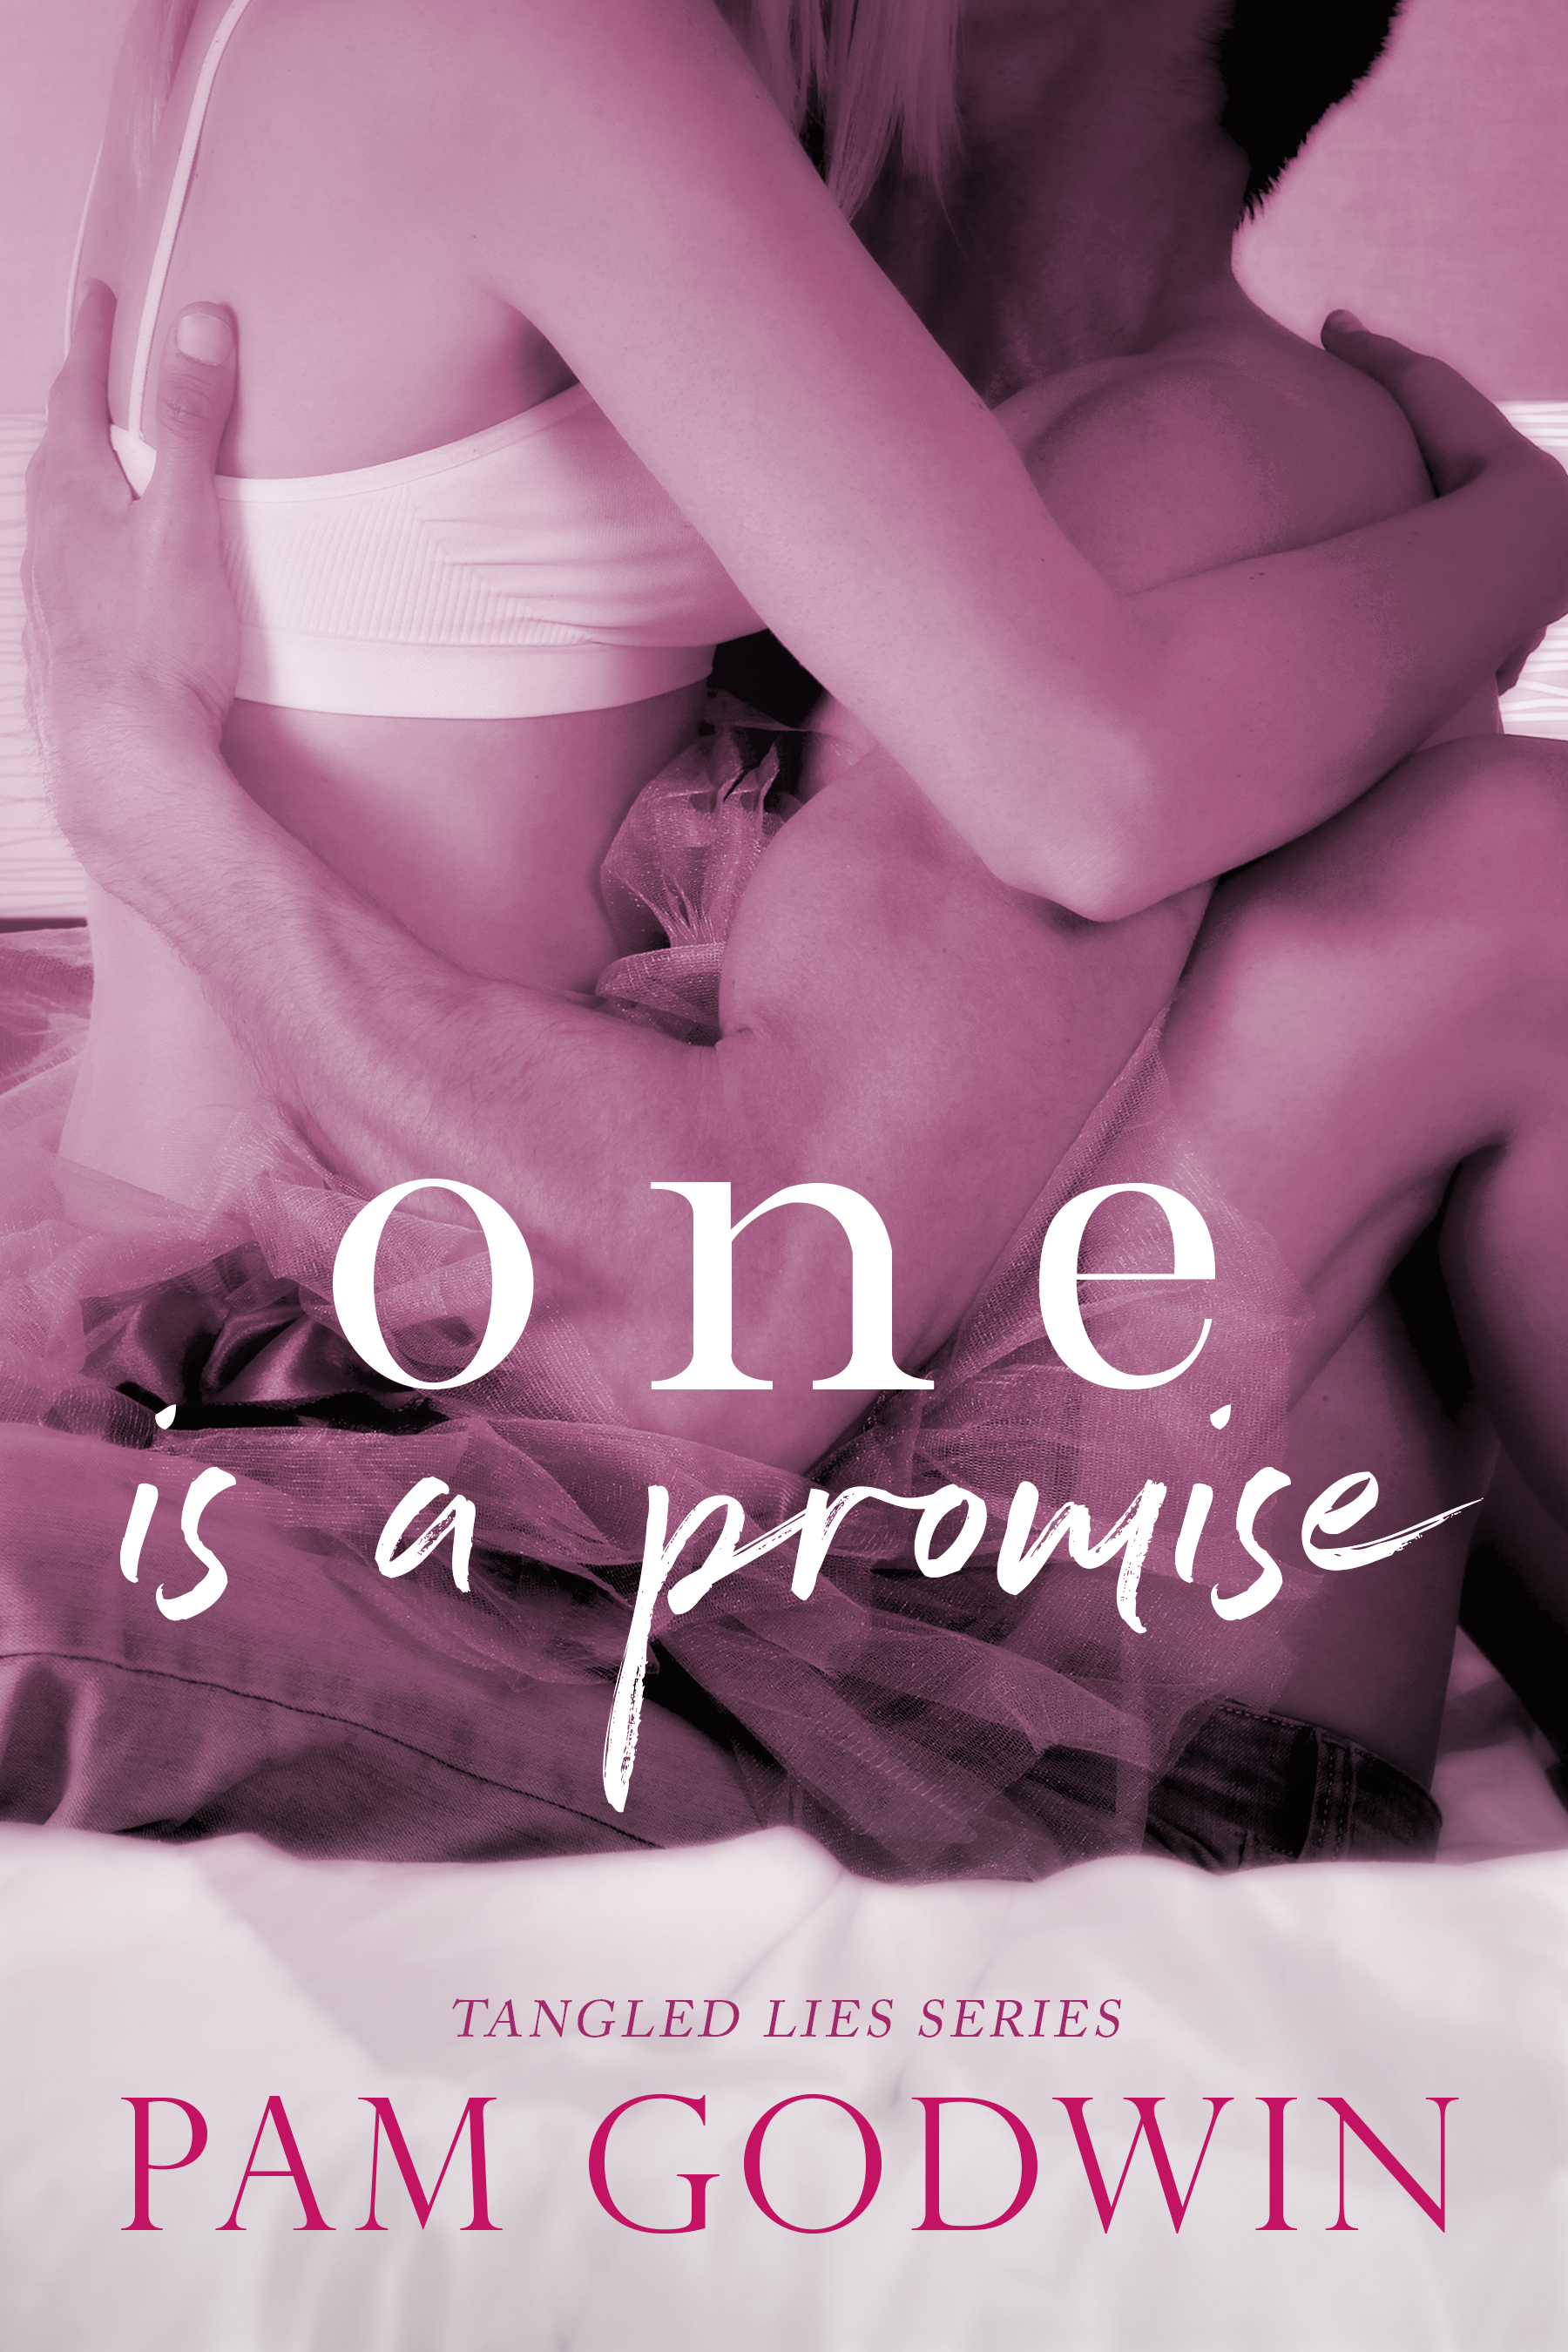 Blurb:   One promise.  One forever.  One look and I knew Cole was mine. My dark rebel in leather. My powerhouse of passion, devastating smiles, and impulsiveness.  When his job sends him overseas, he promises to return to me.  A promise that's destroyed in the most irrevocable way.  Two years later, an arrogant suit invades my heartbroken loneliness.  Clean-cut and stern, Trace is everything Cole wasn't.  At first, he's a job that will rescue my dance company. But as he intrudes on my life, our hostile relationship evolves.  He knows I'm still in love with Cole, but his dedication is my undoing.  Then a catastrophic moment changes everything.  Promises resurface.  Lies entangle.  And an impossible choice shatters my world.  I love two men, and I can only have one.  Buy Links:    Amazon  ~  Other retailers  ~  Goodreads